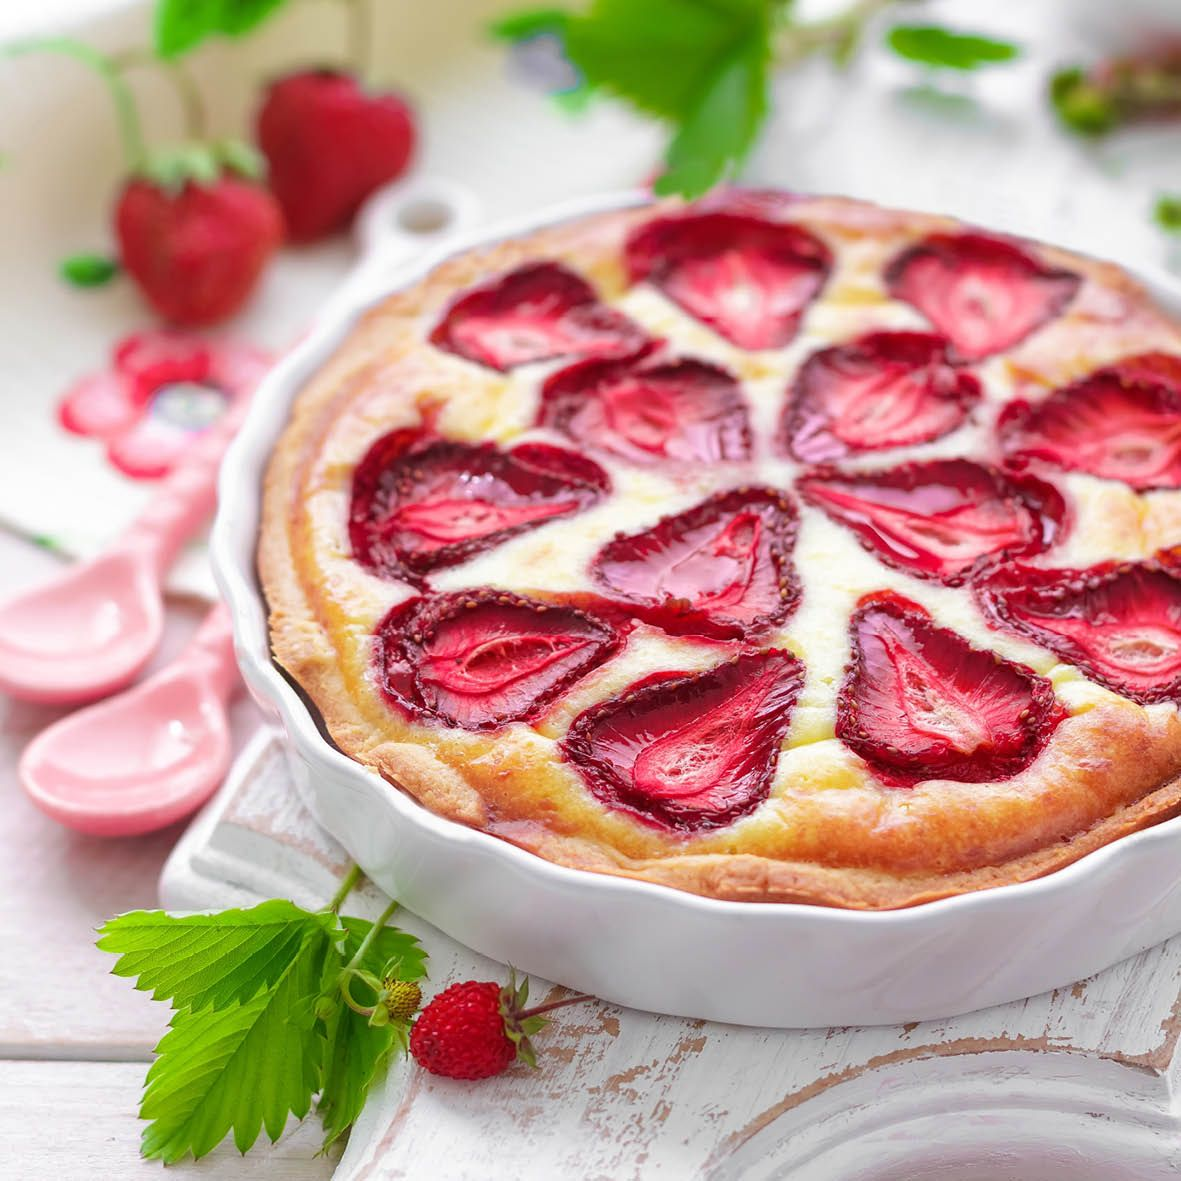 Strawberry_and_Custard_Pie.jpg